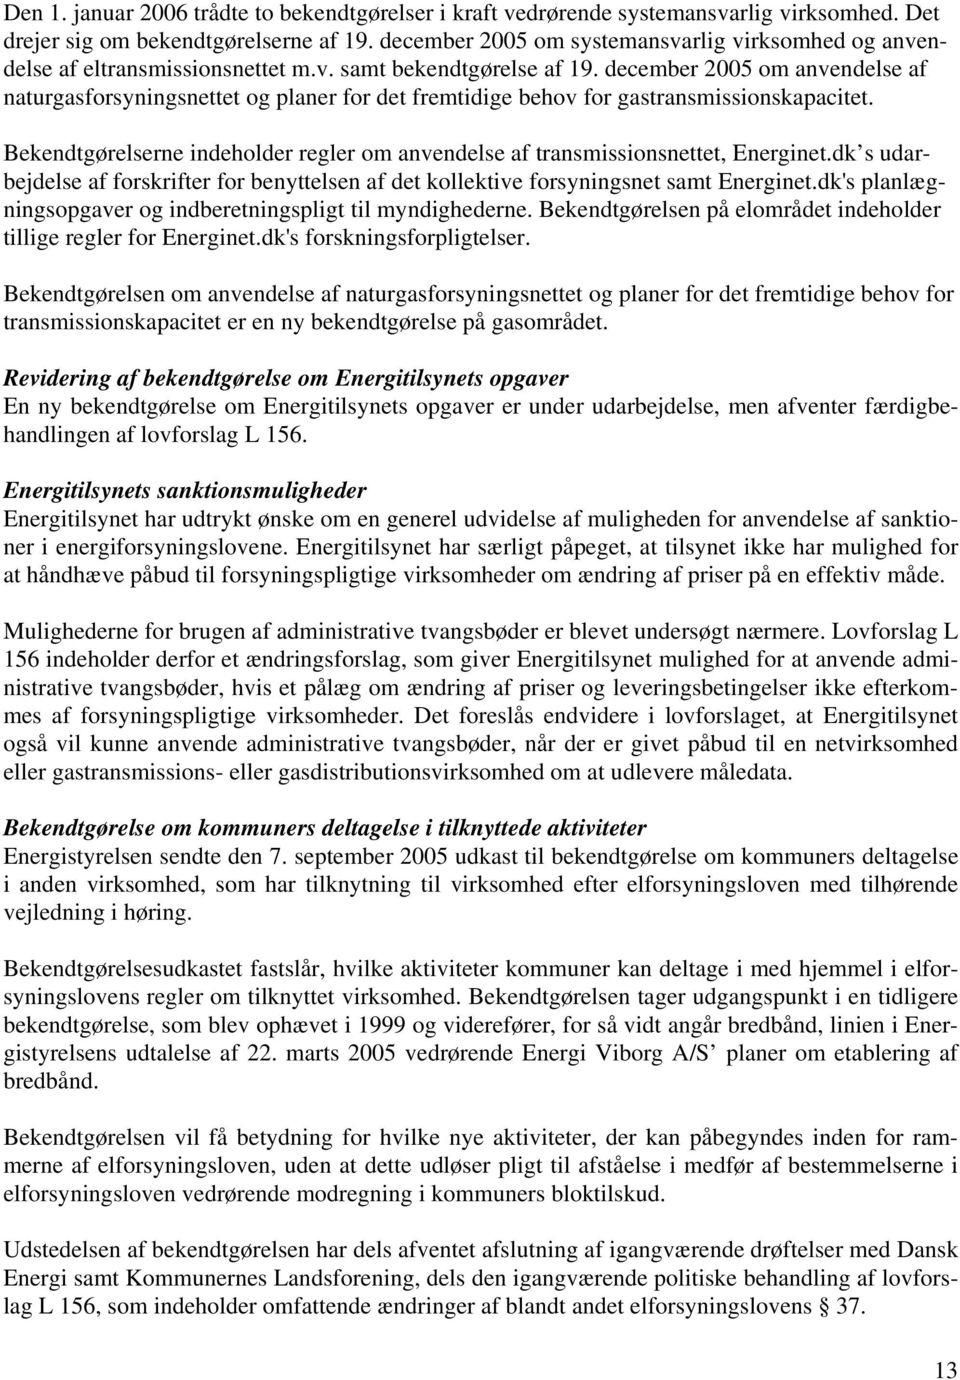 december 2005 om anvendelse af naturgasforsyningsnettet og planer for det fremtidige behov for gastransmissionskapacitet.